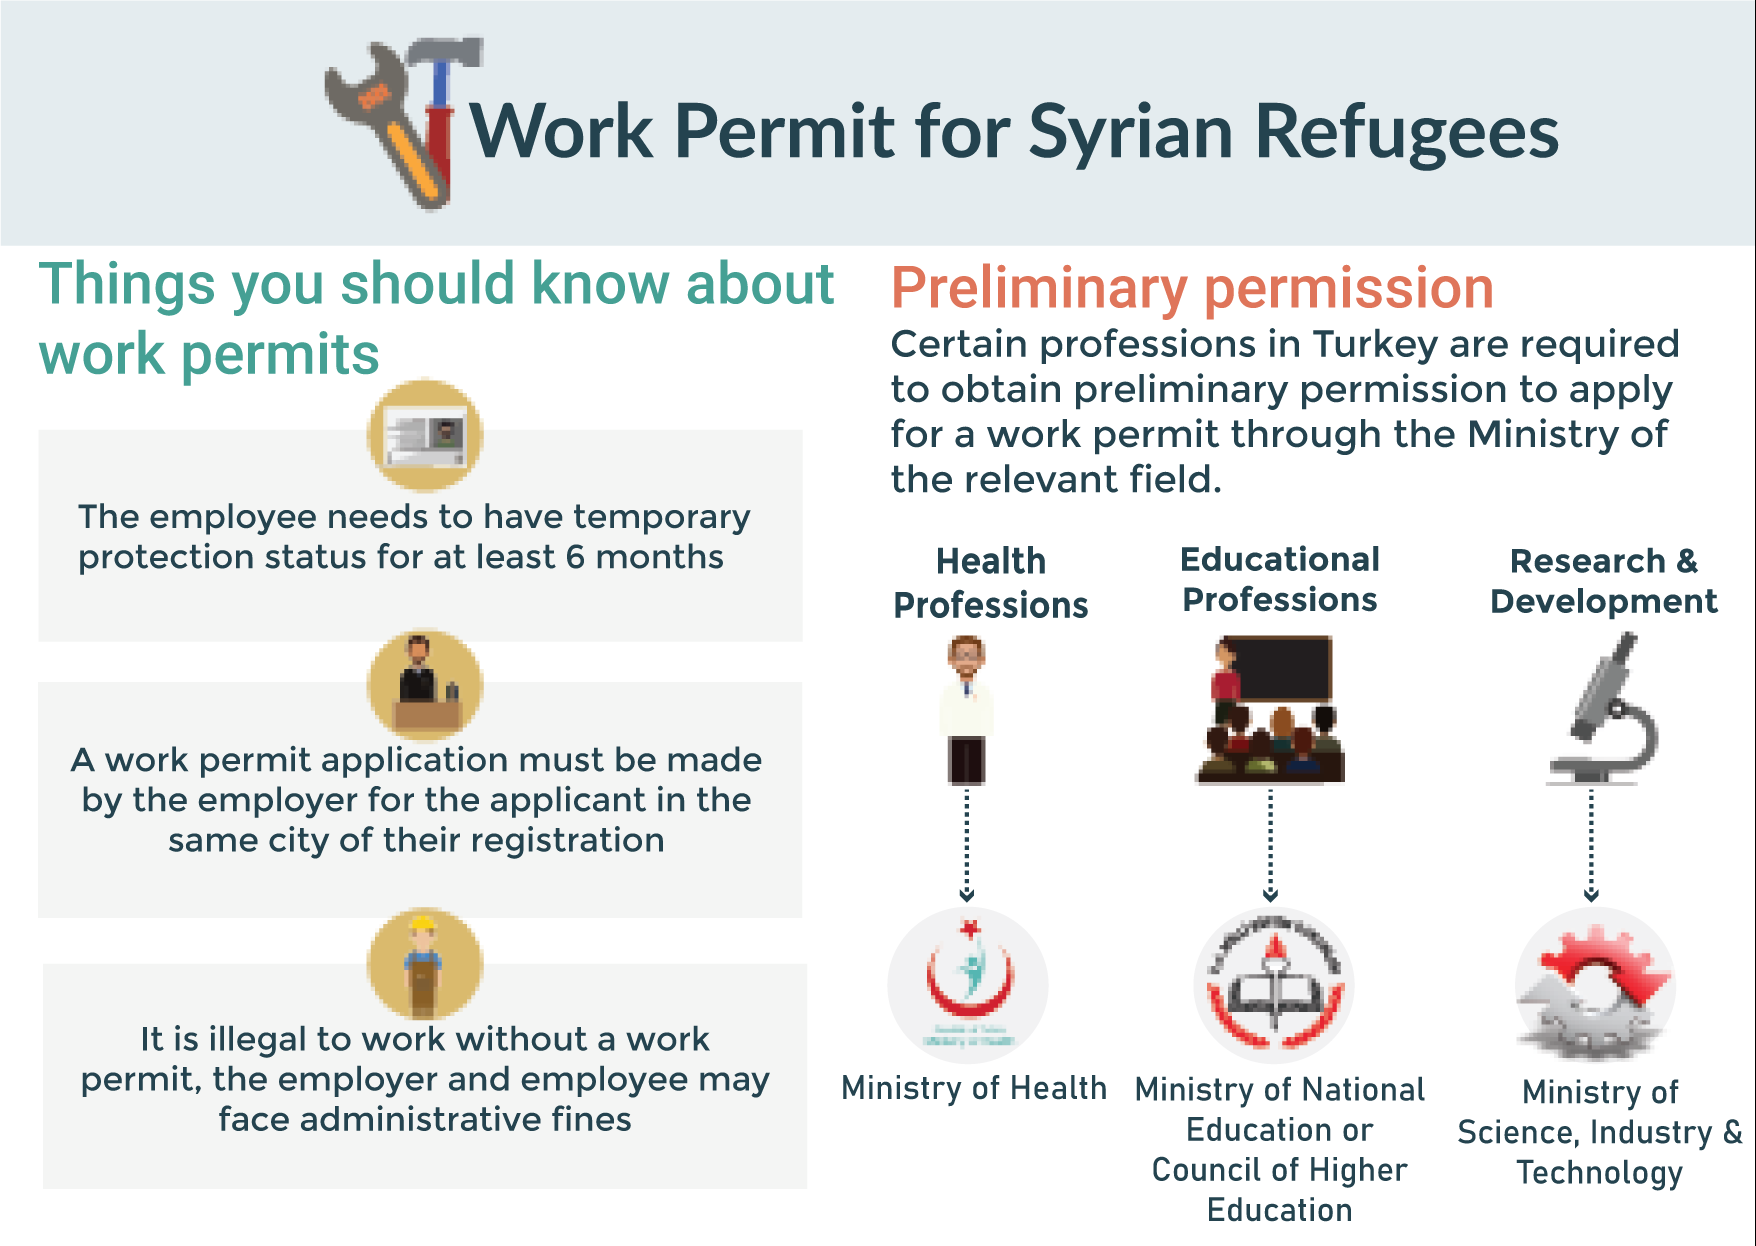 Employee work permit application work without a work permit, the employer Certain professions in Turkey are required to obtain preliminary permission to apply for a work permit through the Ministry of the relevant field.